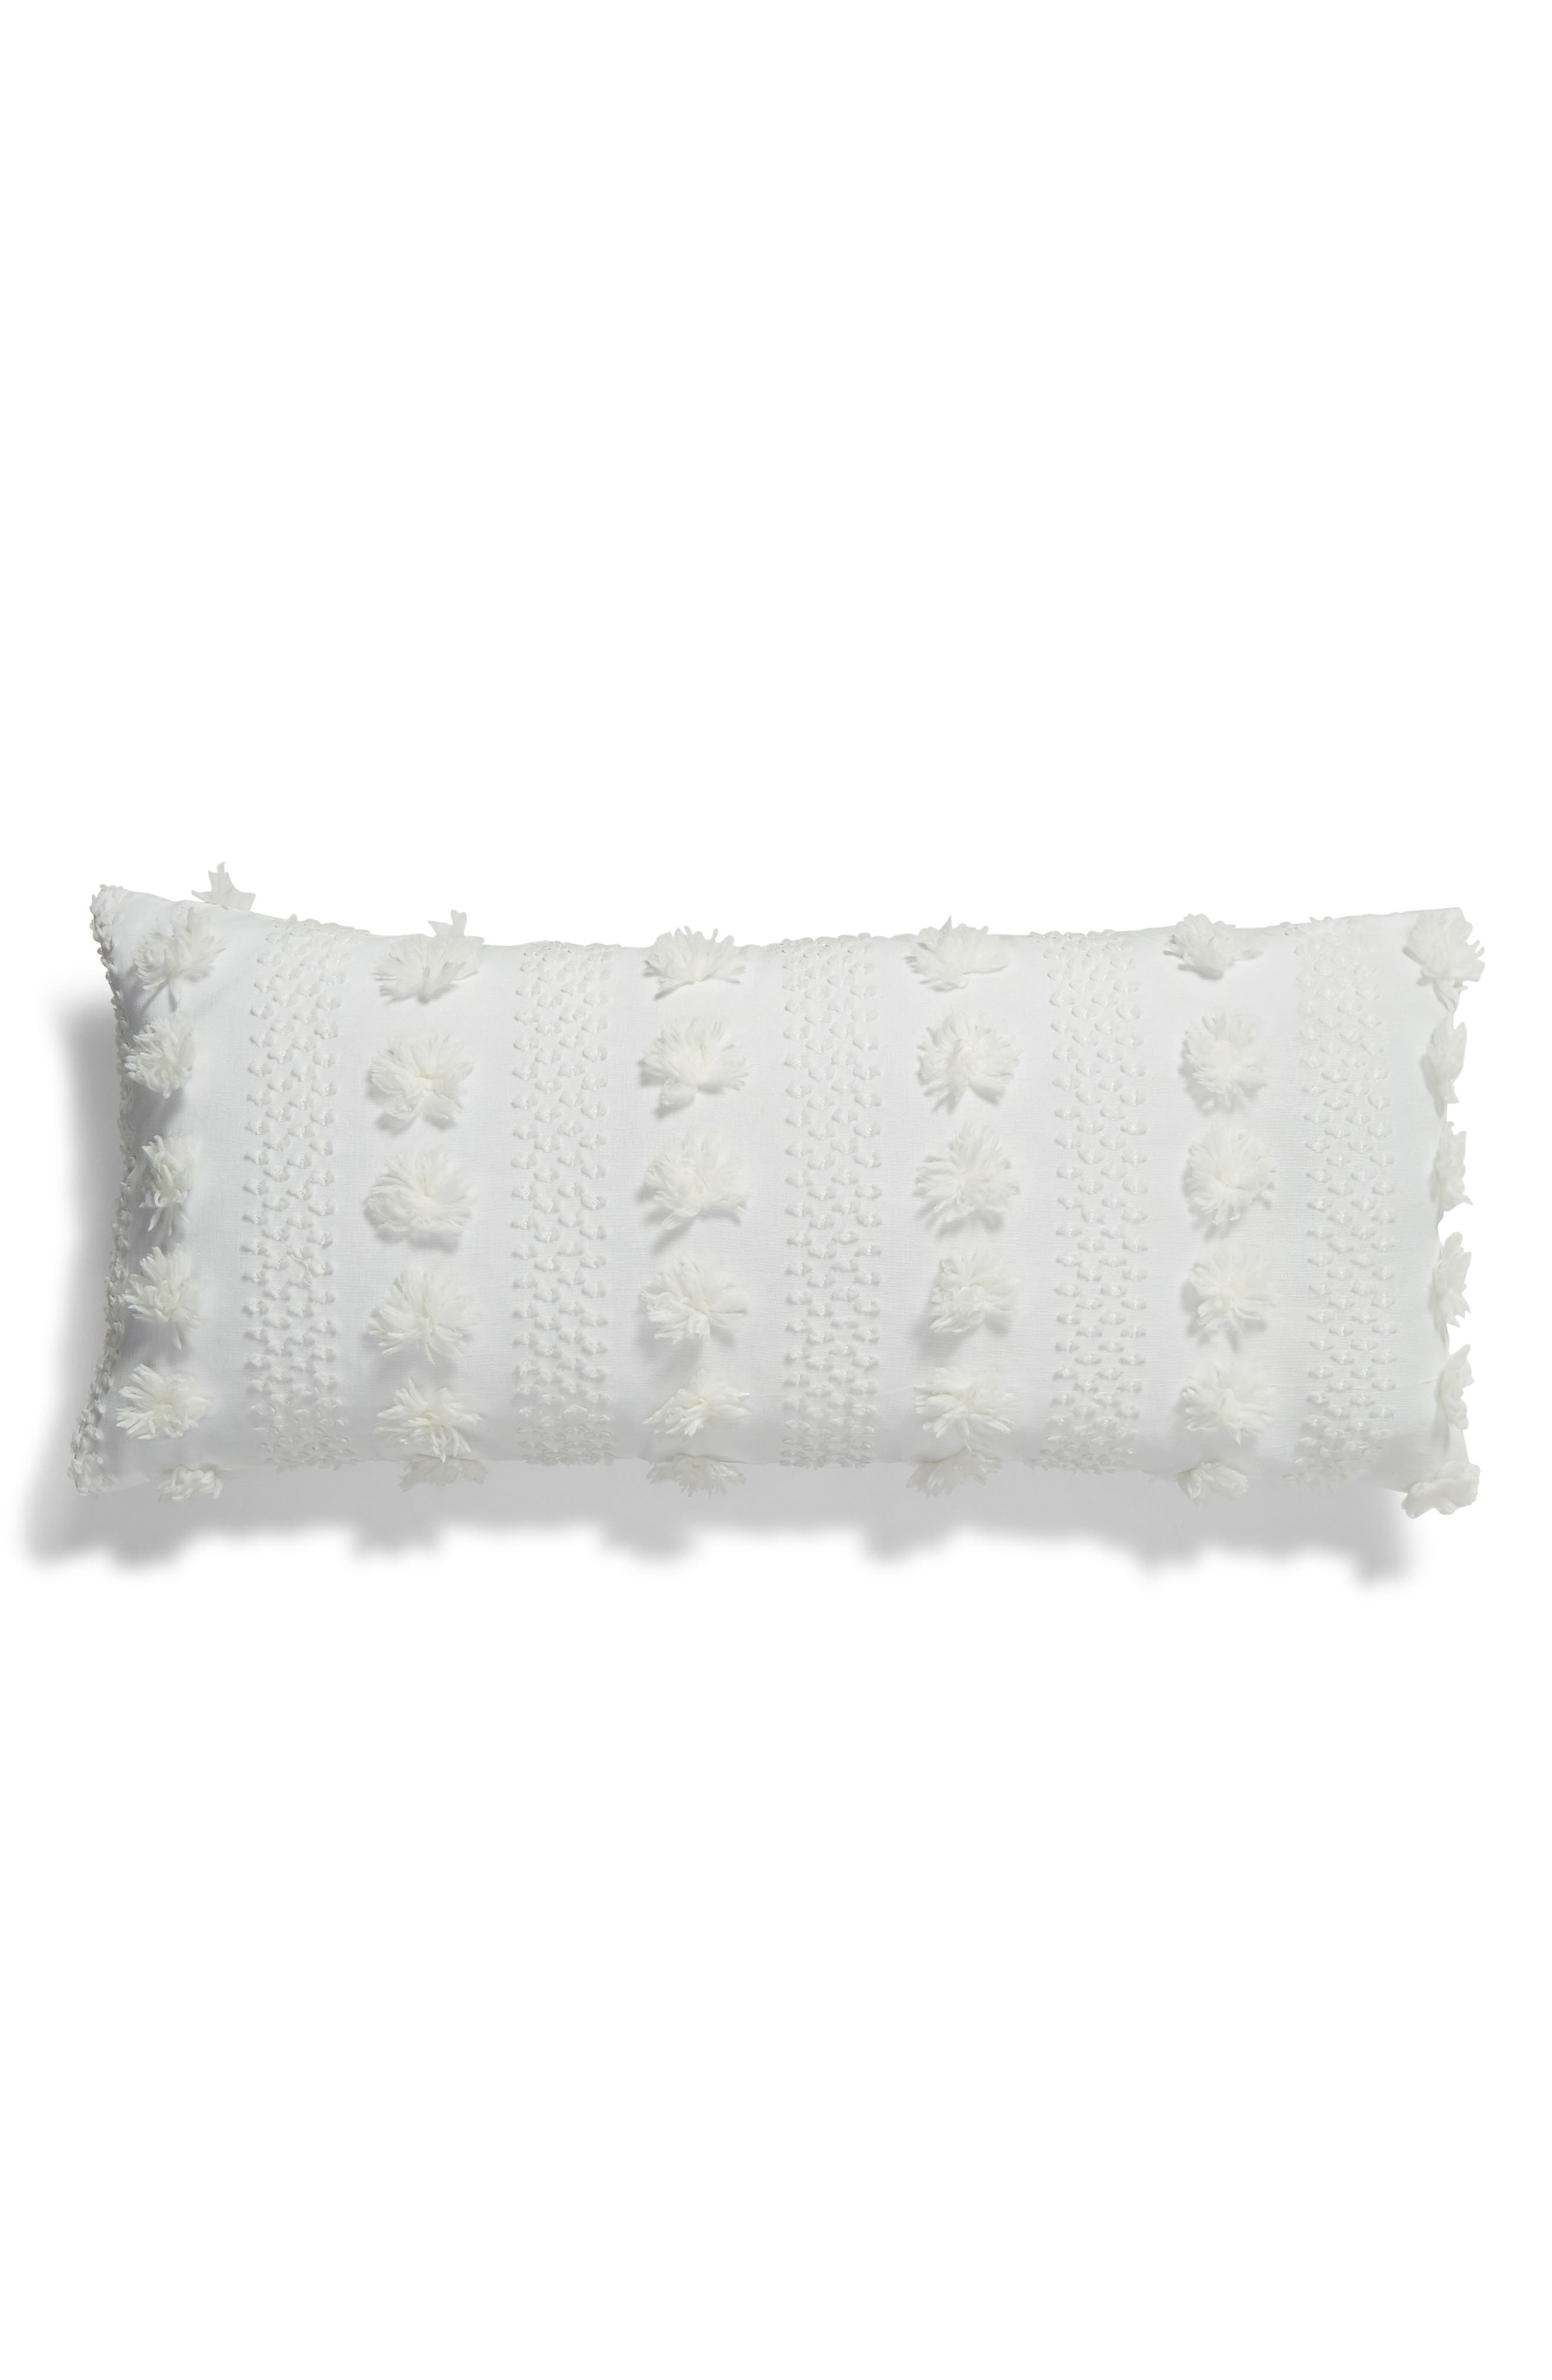 Tufted Overlay Accent Pillow,                             Main thumbnail 1, color,                             WHITE